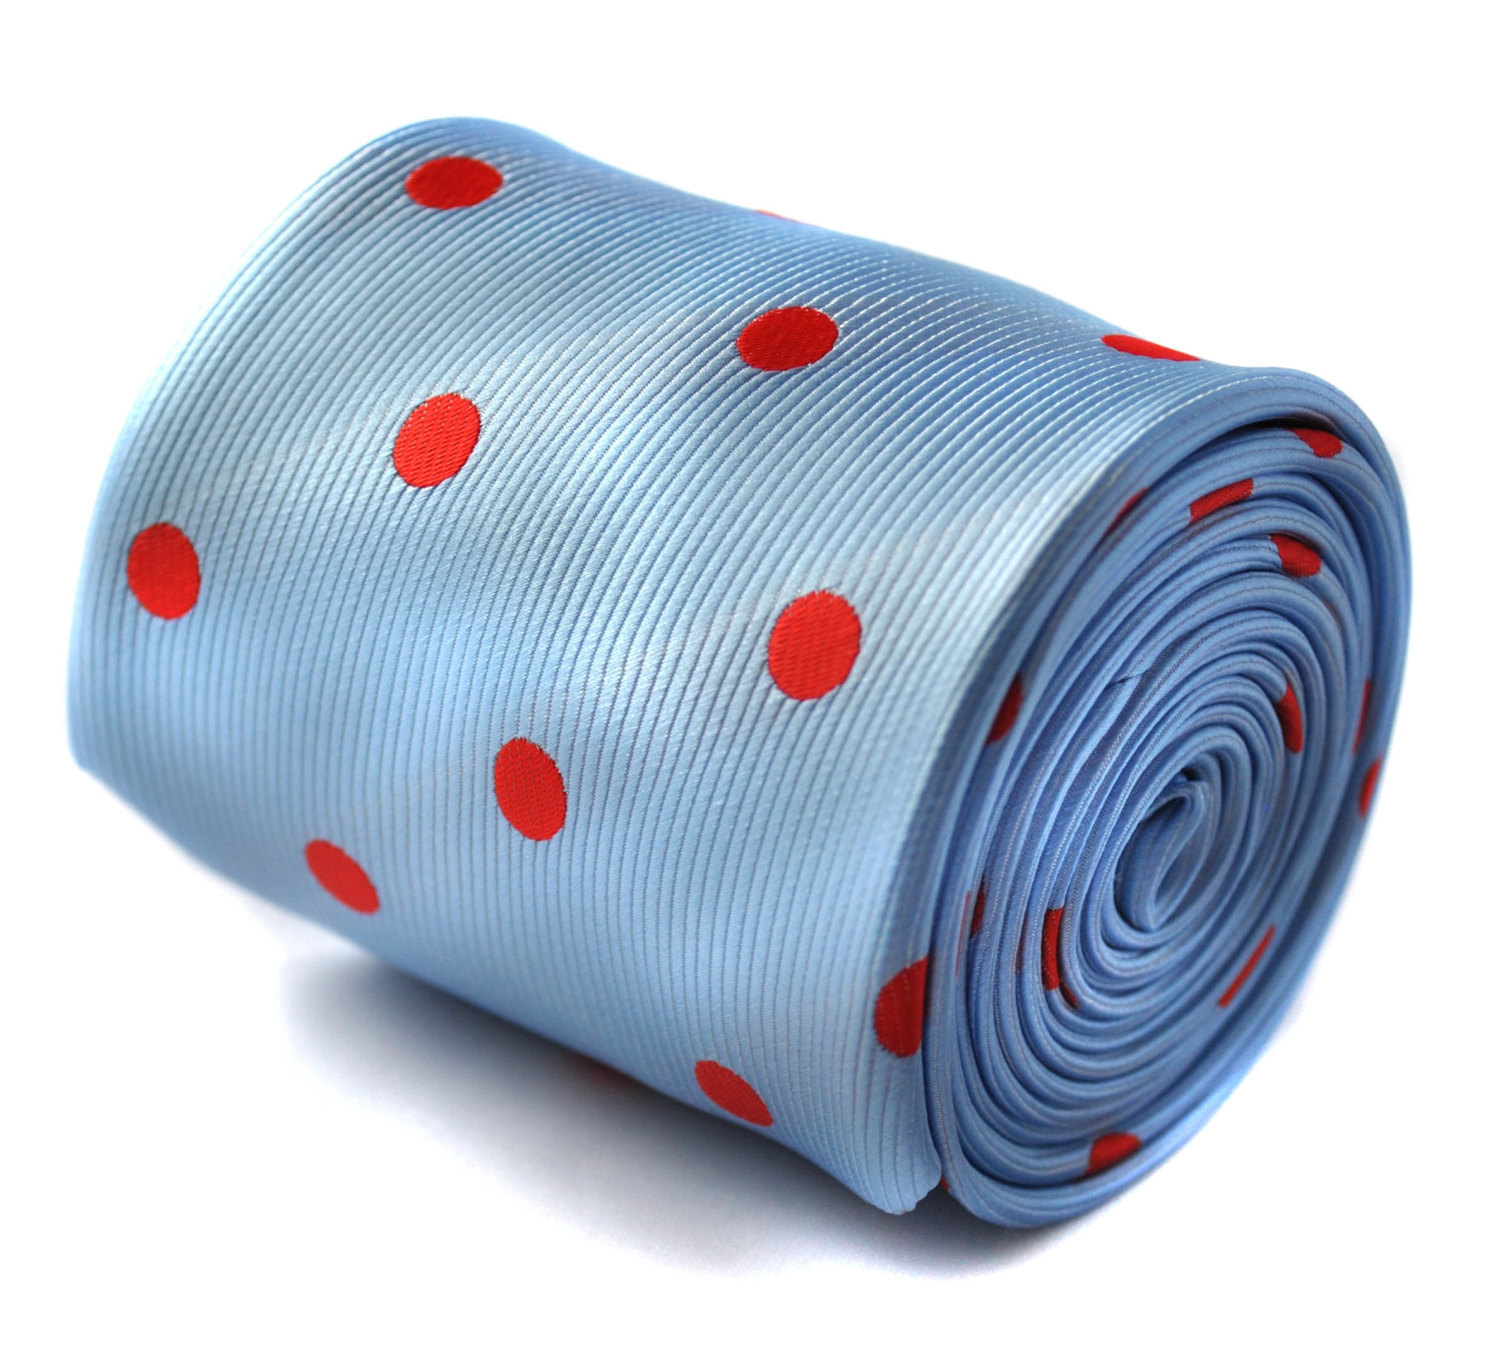 light blue and red polka spot tie with signature floral design to the rear by Fr